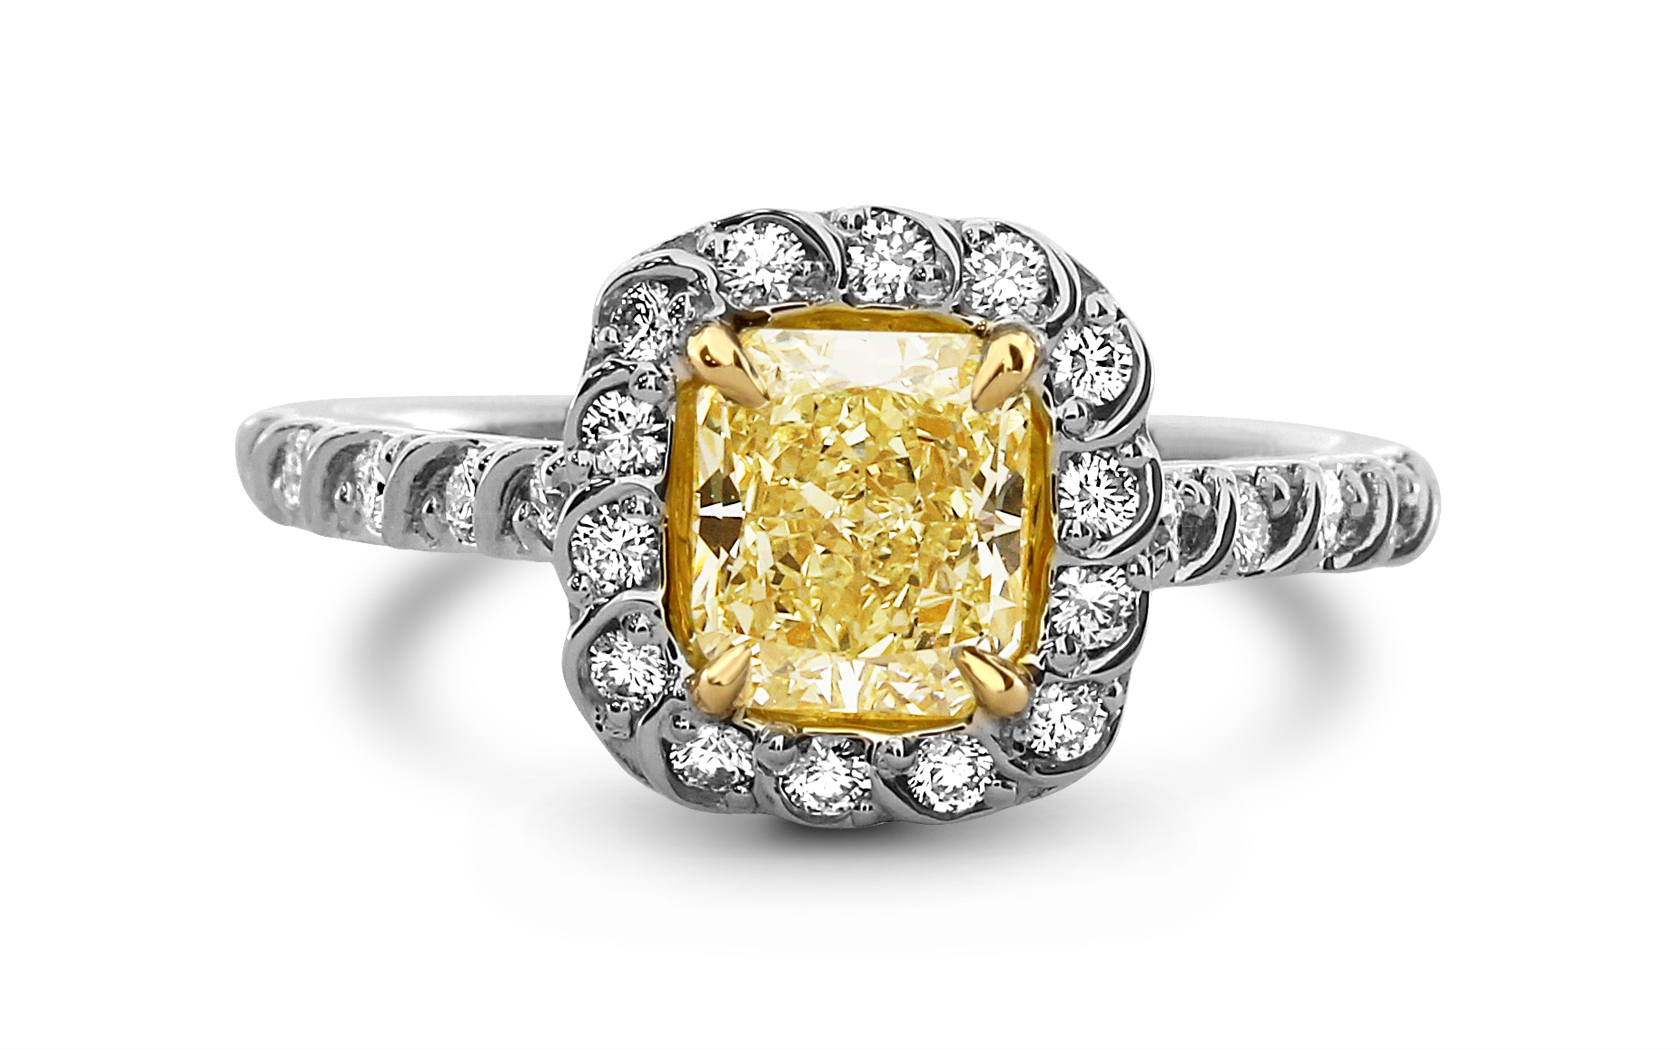 Radiant Cut Fly Color 18k White Gold Yellow Diamond Ring Regarding Radiant Yellow Diamond Rings (View 16 of 25)